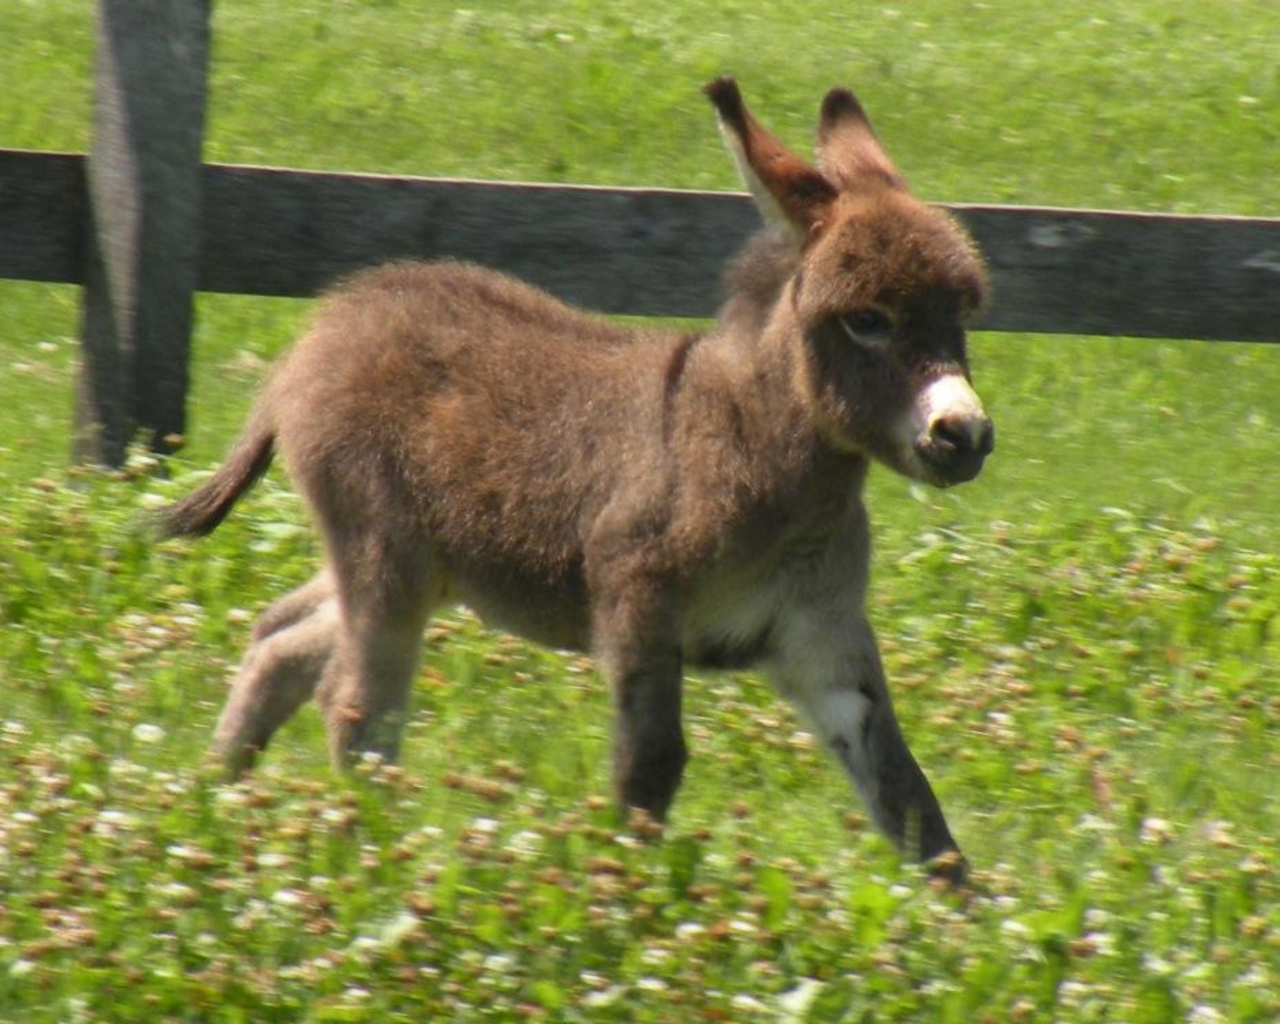 Donkey Wallpaper Donkeys Images Donkey Baby Hd Wallpaper And Background Photos